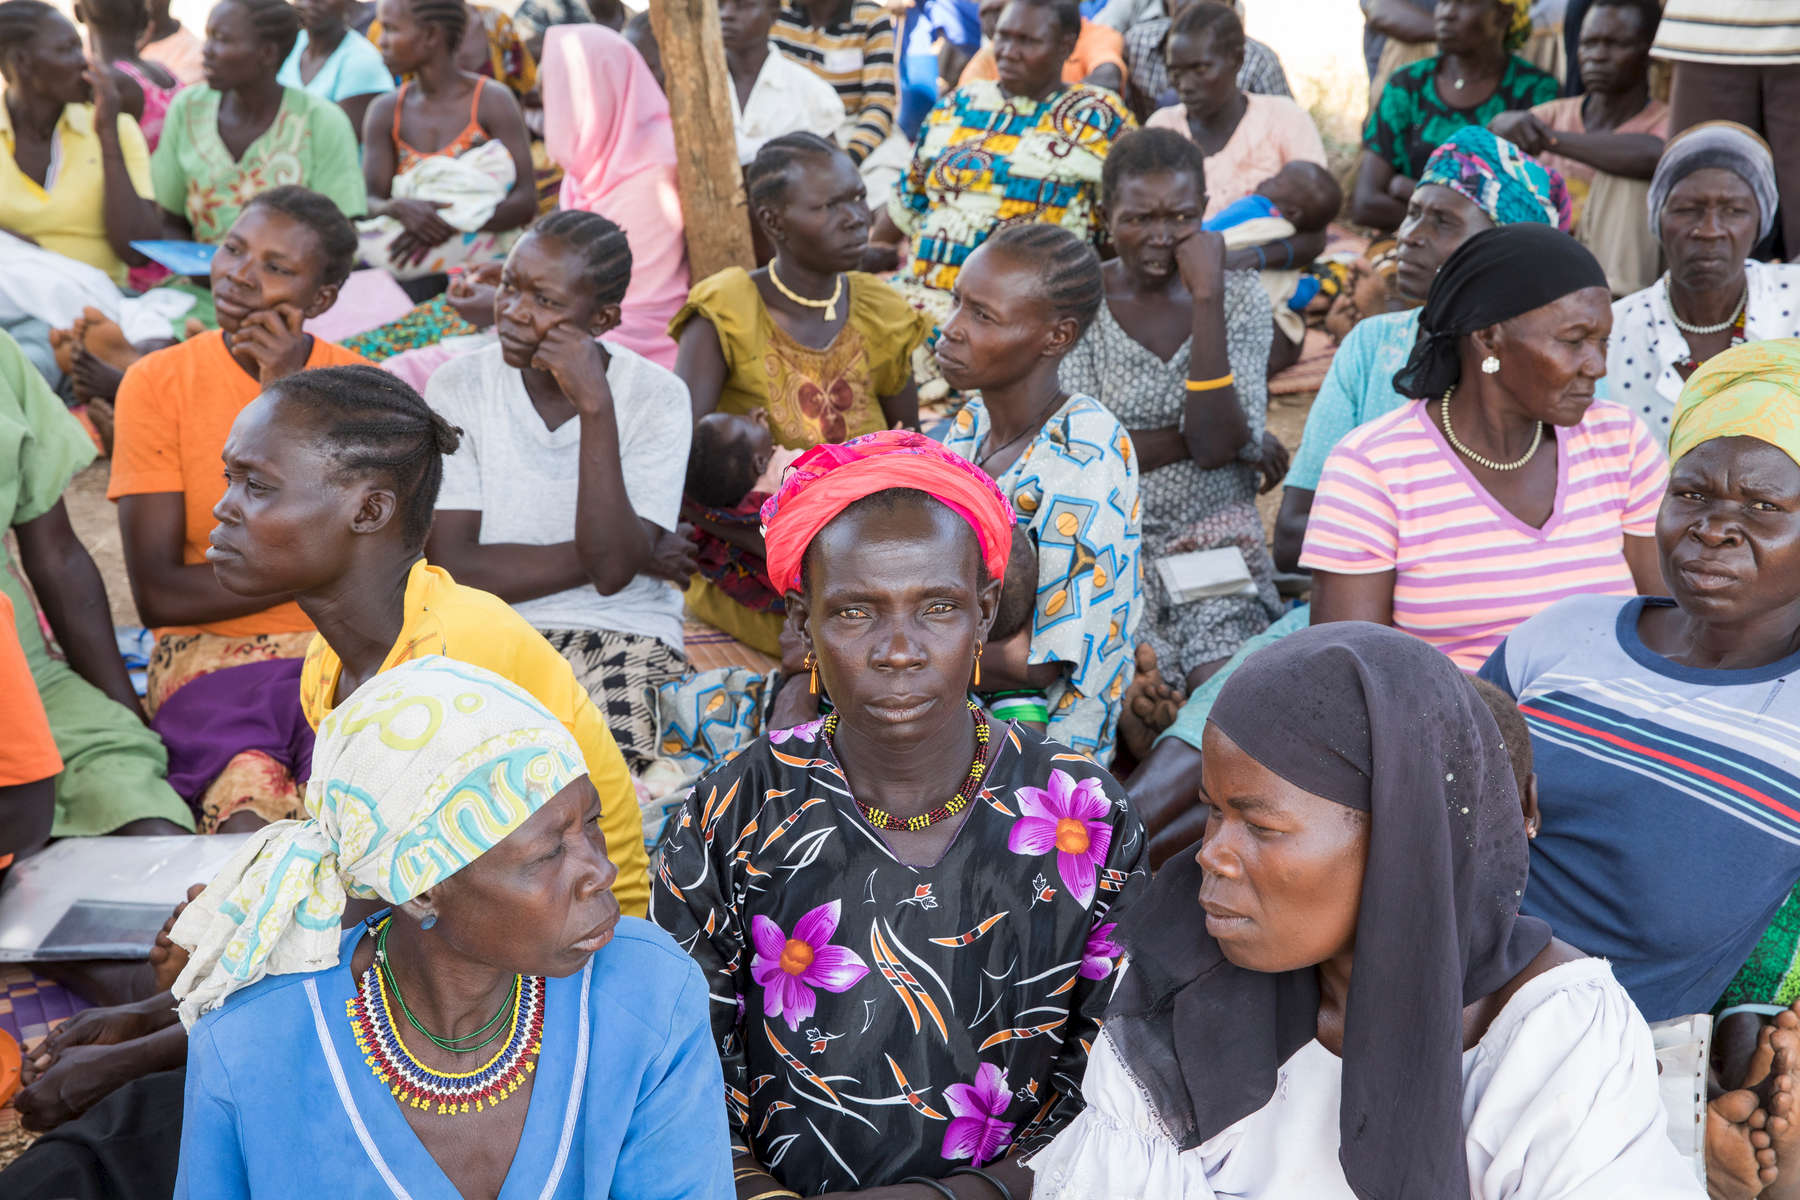 Apate Amina, 37, waits in line at a Mercy Corps cash distribution. She comes from Kimba, in the Central Equatoria region of South Sudan, and arrived in Bidi Bidi in October 2016. Apate takes care of 12 children, 7 of her own and 7 that belonged to her sister who was killed by stray bullets during the recent conflict. She received a payment of 84,0000 Ugandan shillings from Mercy Corps in December, and will receive another payment in March 2018. All of the refugees who received the cash distribution are members of Mercy Corps-supported farmers groups. The objective of the cash distributions are to help them delay the sales of their harvests, so they can sell their produce at higher prices. If they can delay long enough, they don't have to eat or sell their seeds before the next planting season.